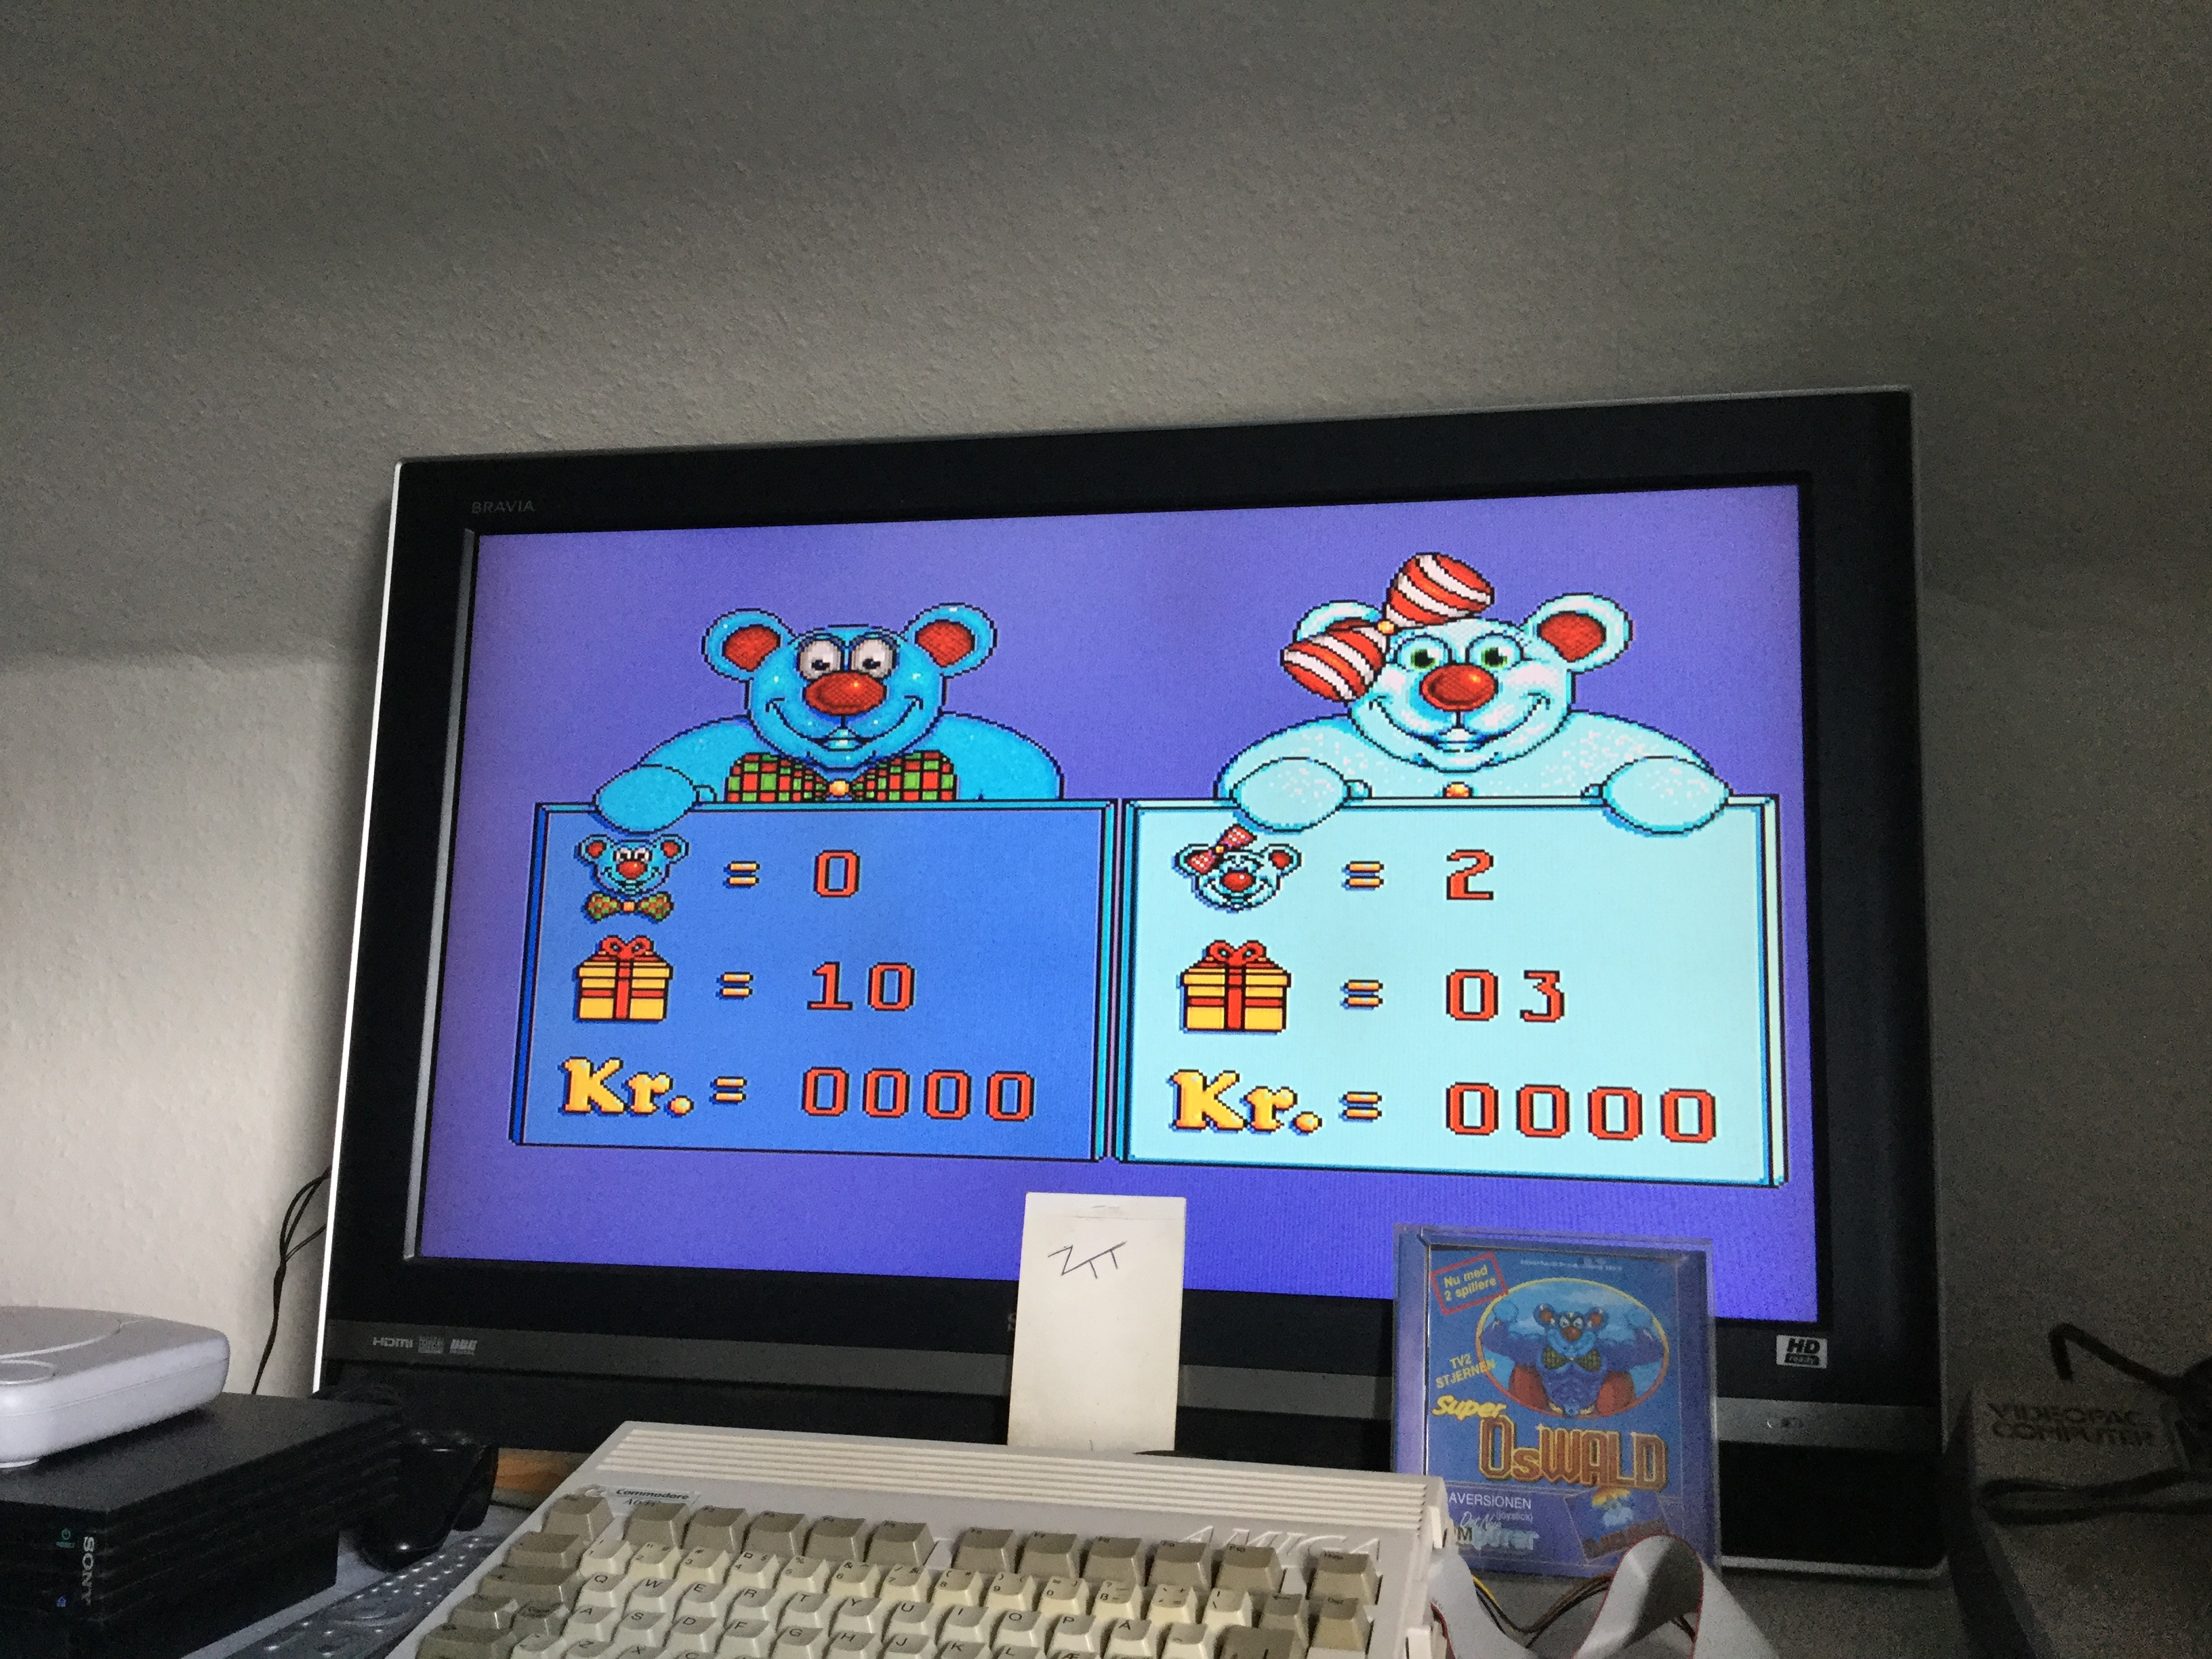 Frankie: Super Oswald [Lives Left * 1000] + Gifts + Kr] (Amiga) 10 points on 2020-03-08 01:45:28